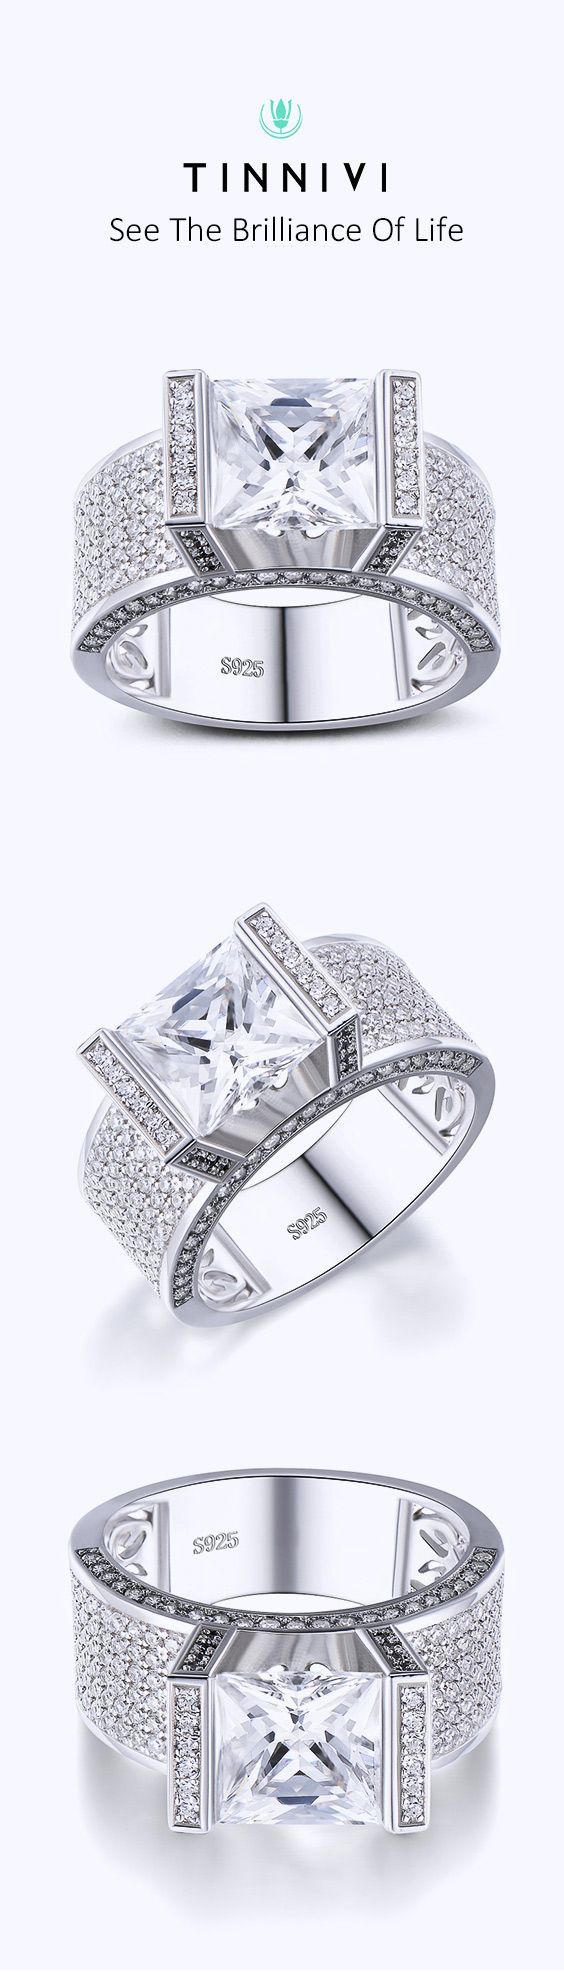 Shop Princess Cut White Sapphire 925 Sterling Silver Engagement Ring online, Tinnivi Jewelry creates quality fine jewelry at gorgeous prices. Shop now! #SterlingSilverEngagement